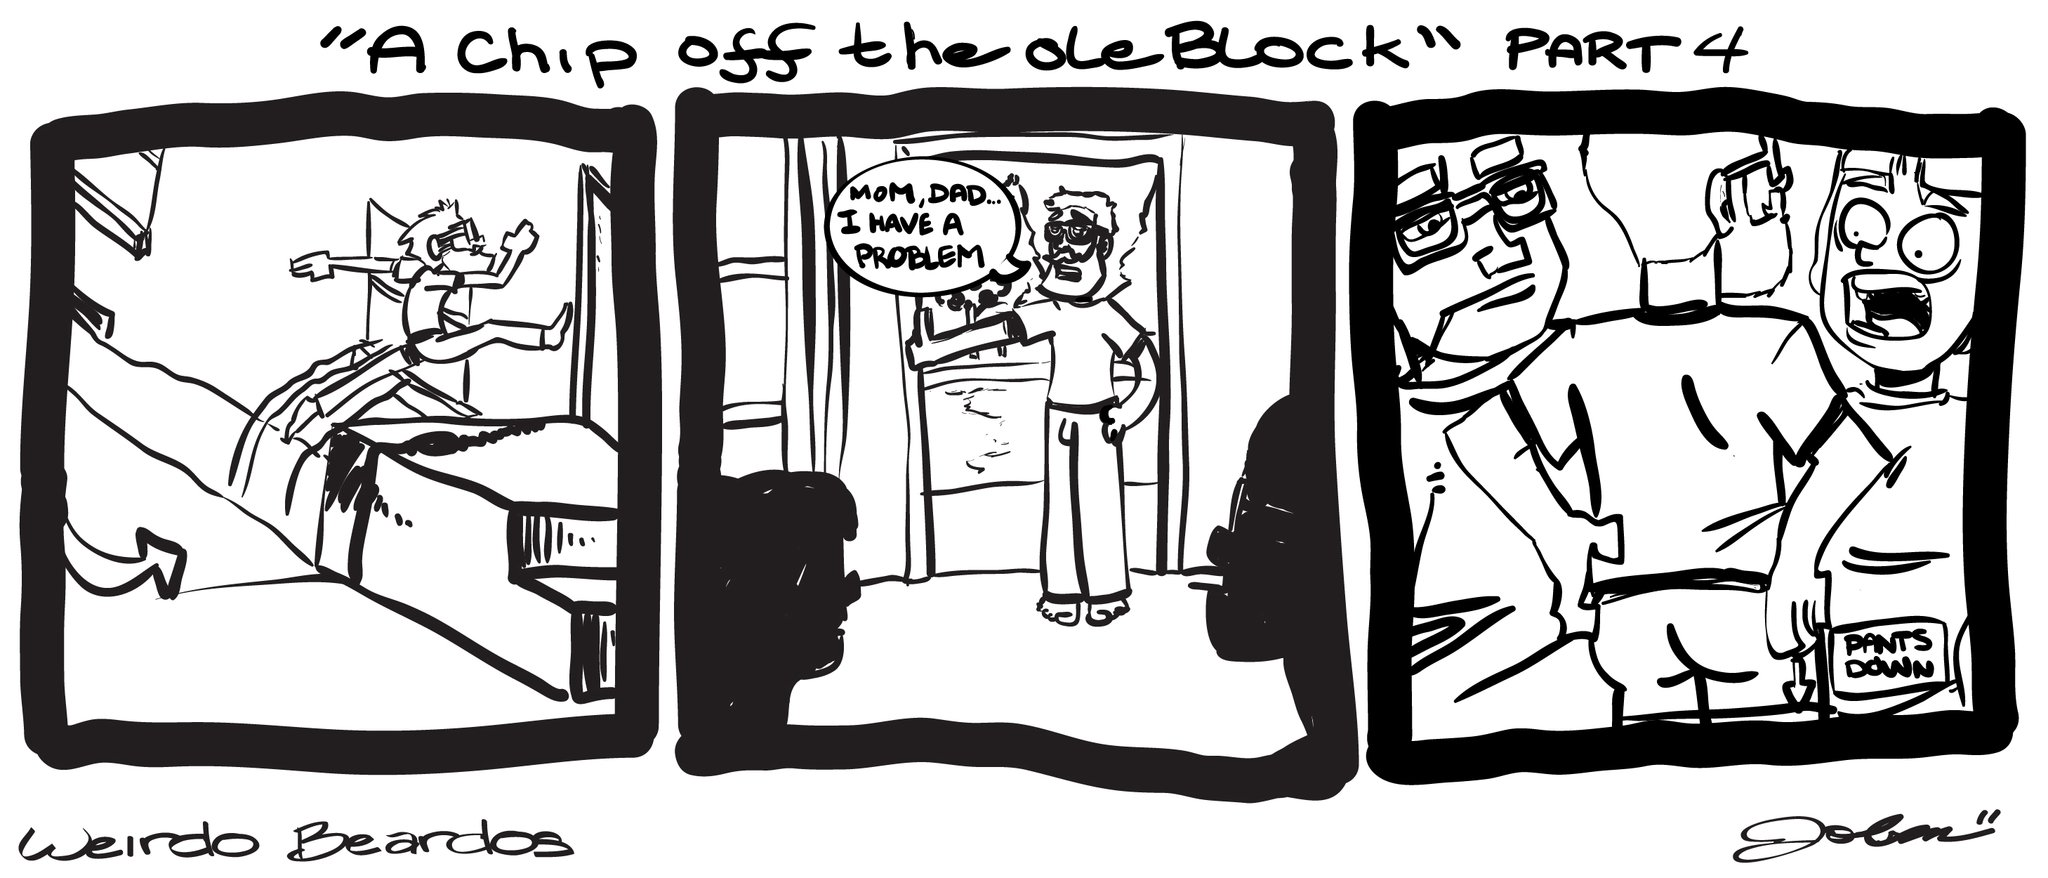 Chip Off the Ole Block, Part 4